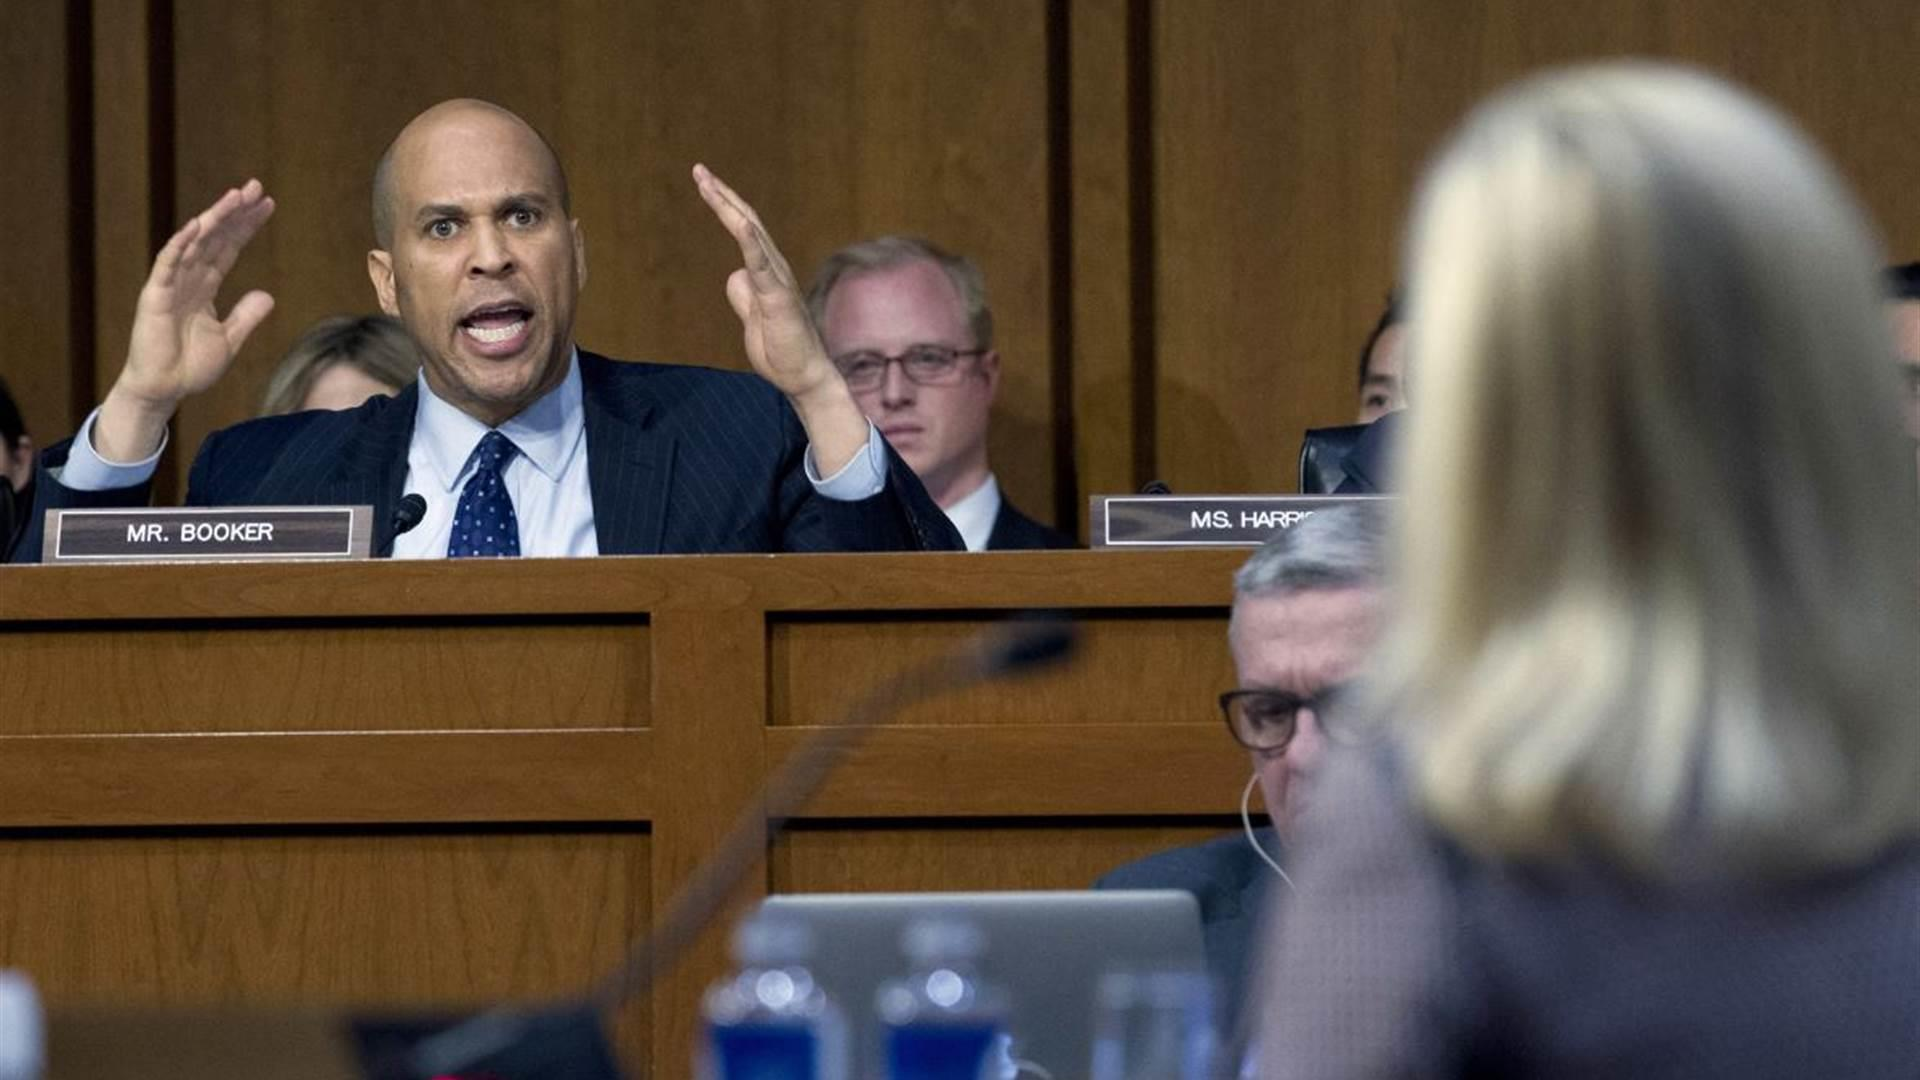 Booker blasts Trump's DHS Secy. for 'convenient amnesia'